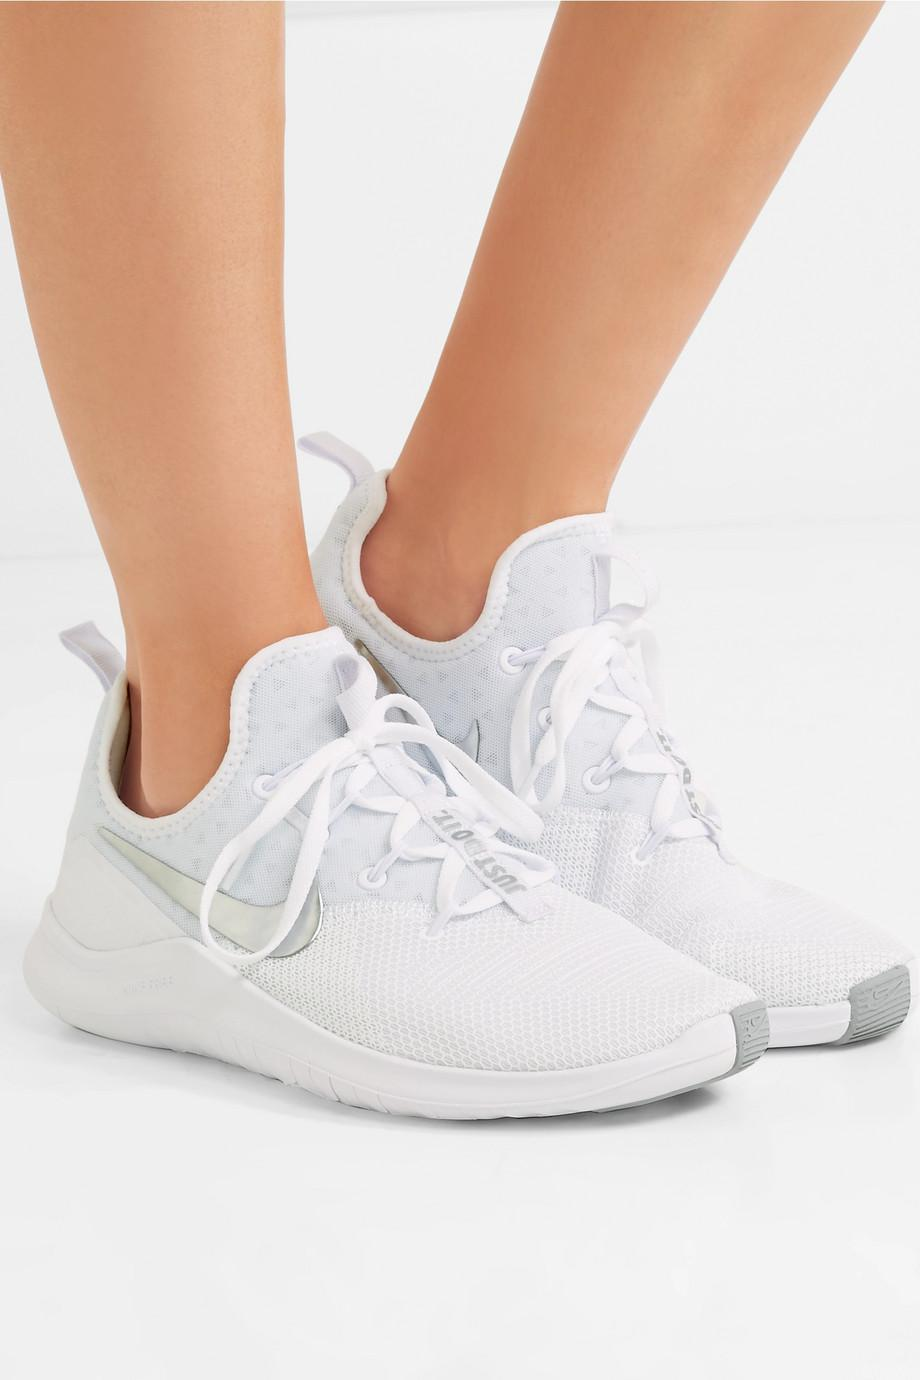 Free Tr 8 Stretch-knit And Mesh Sneakers - White Nike DP6CrJOoMl